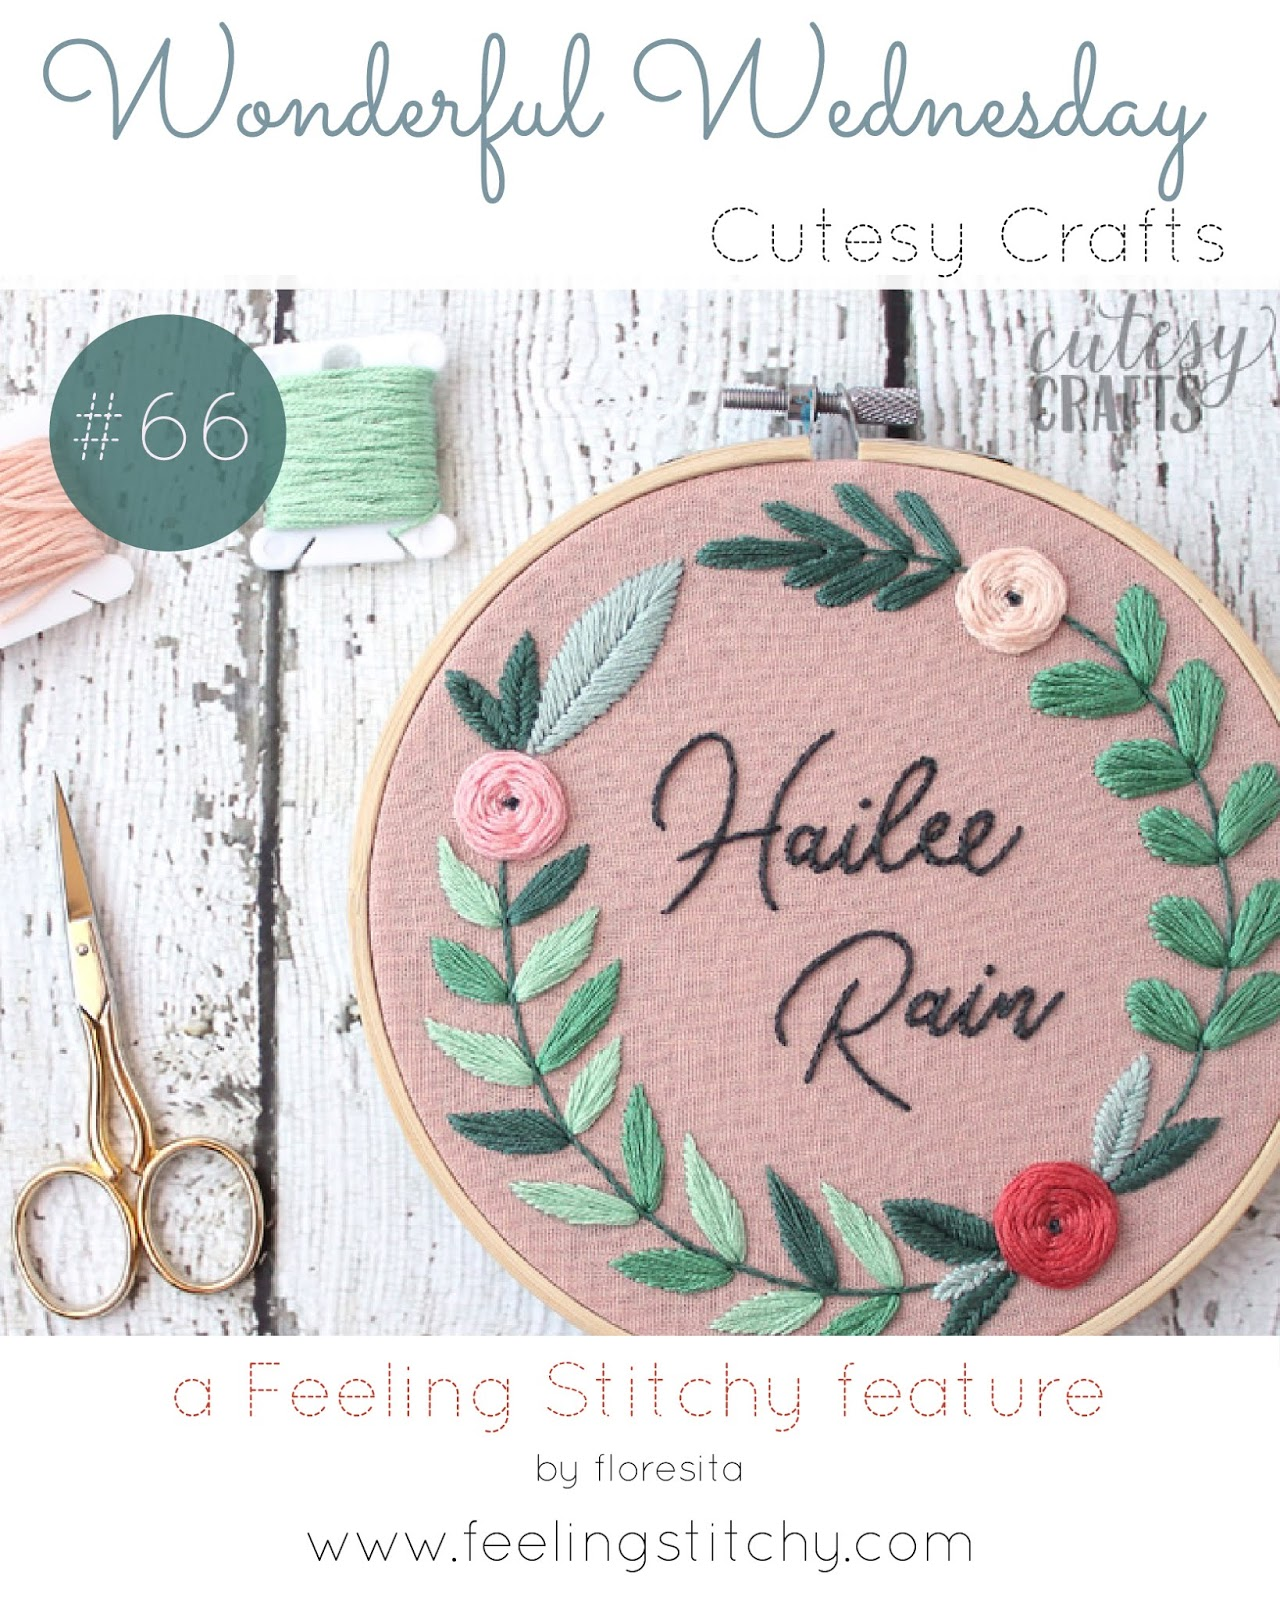 Wonderful Wednesday 66 - Cutesy Crafts a feature by floresita for Feeling Stitchy